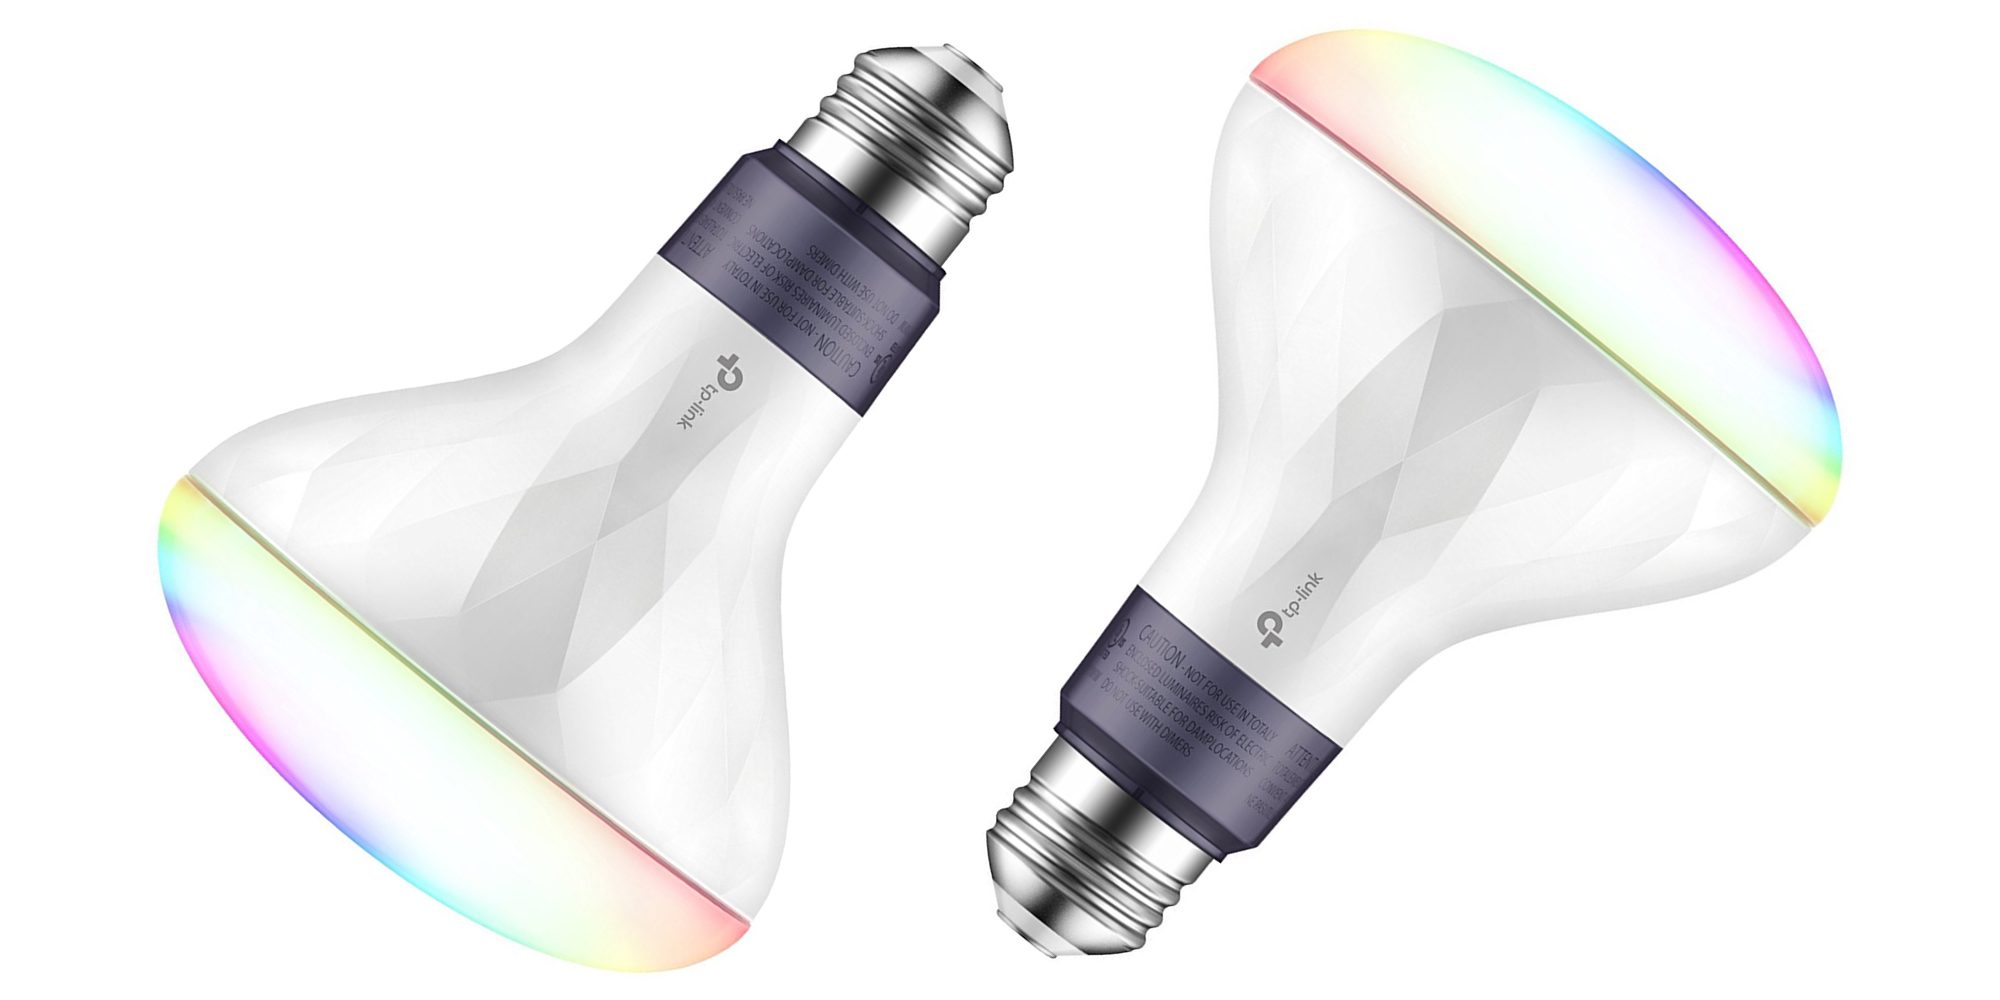 Grab two TP-Link Multicolor Smart LED Light Bulbs for the price of one at $50 shipped